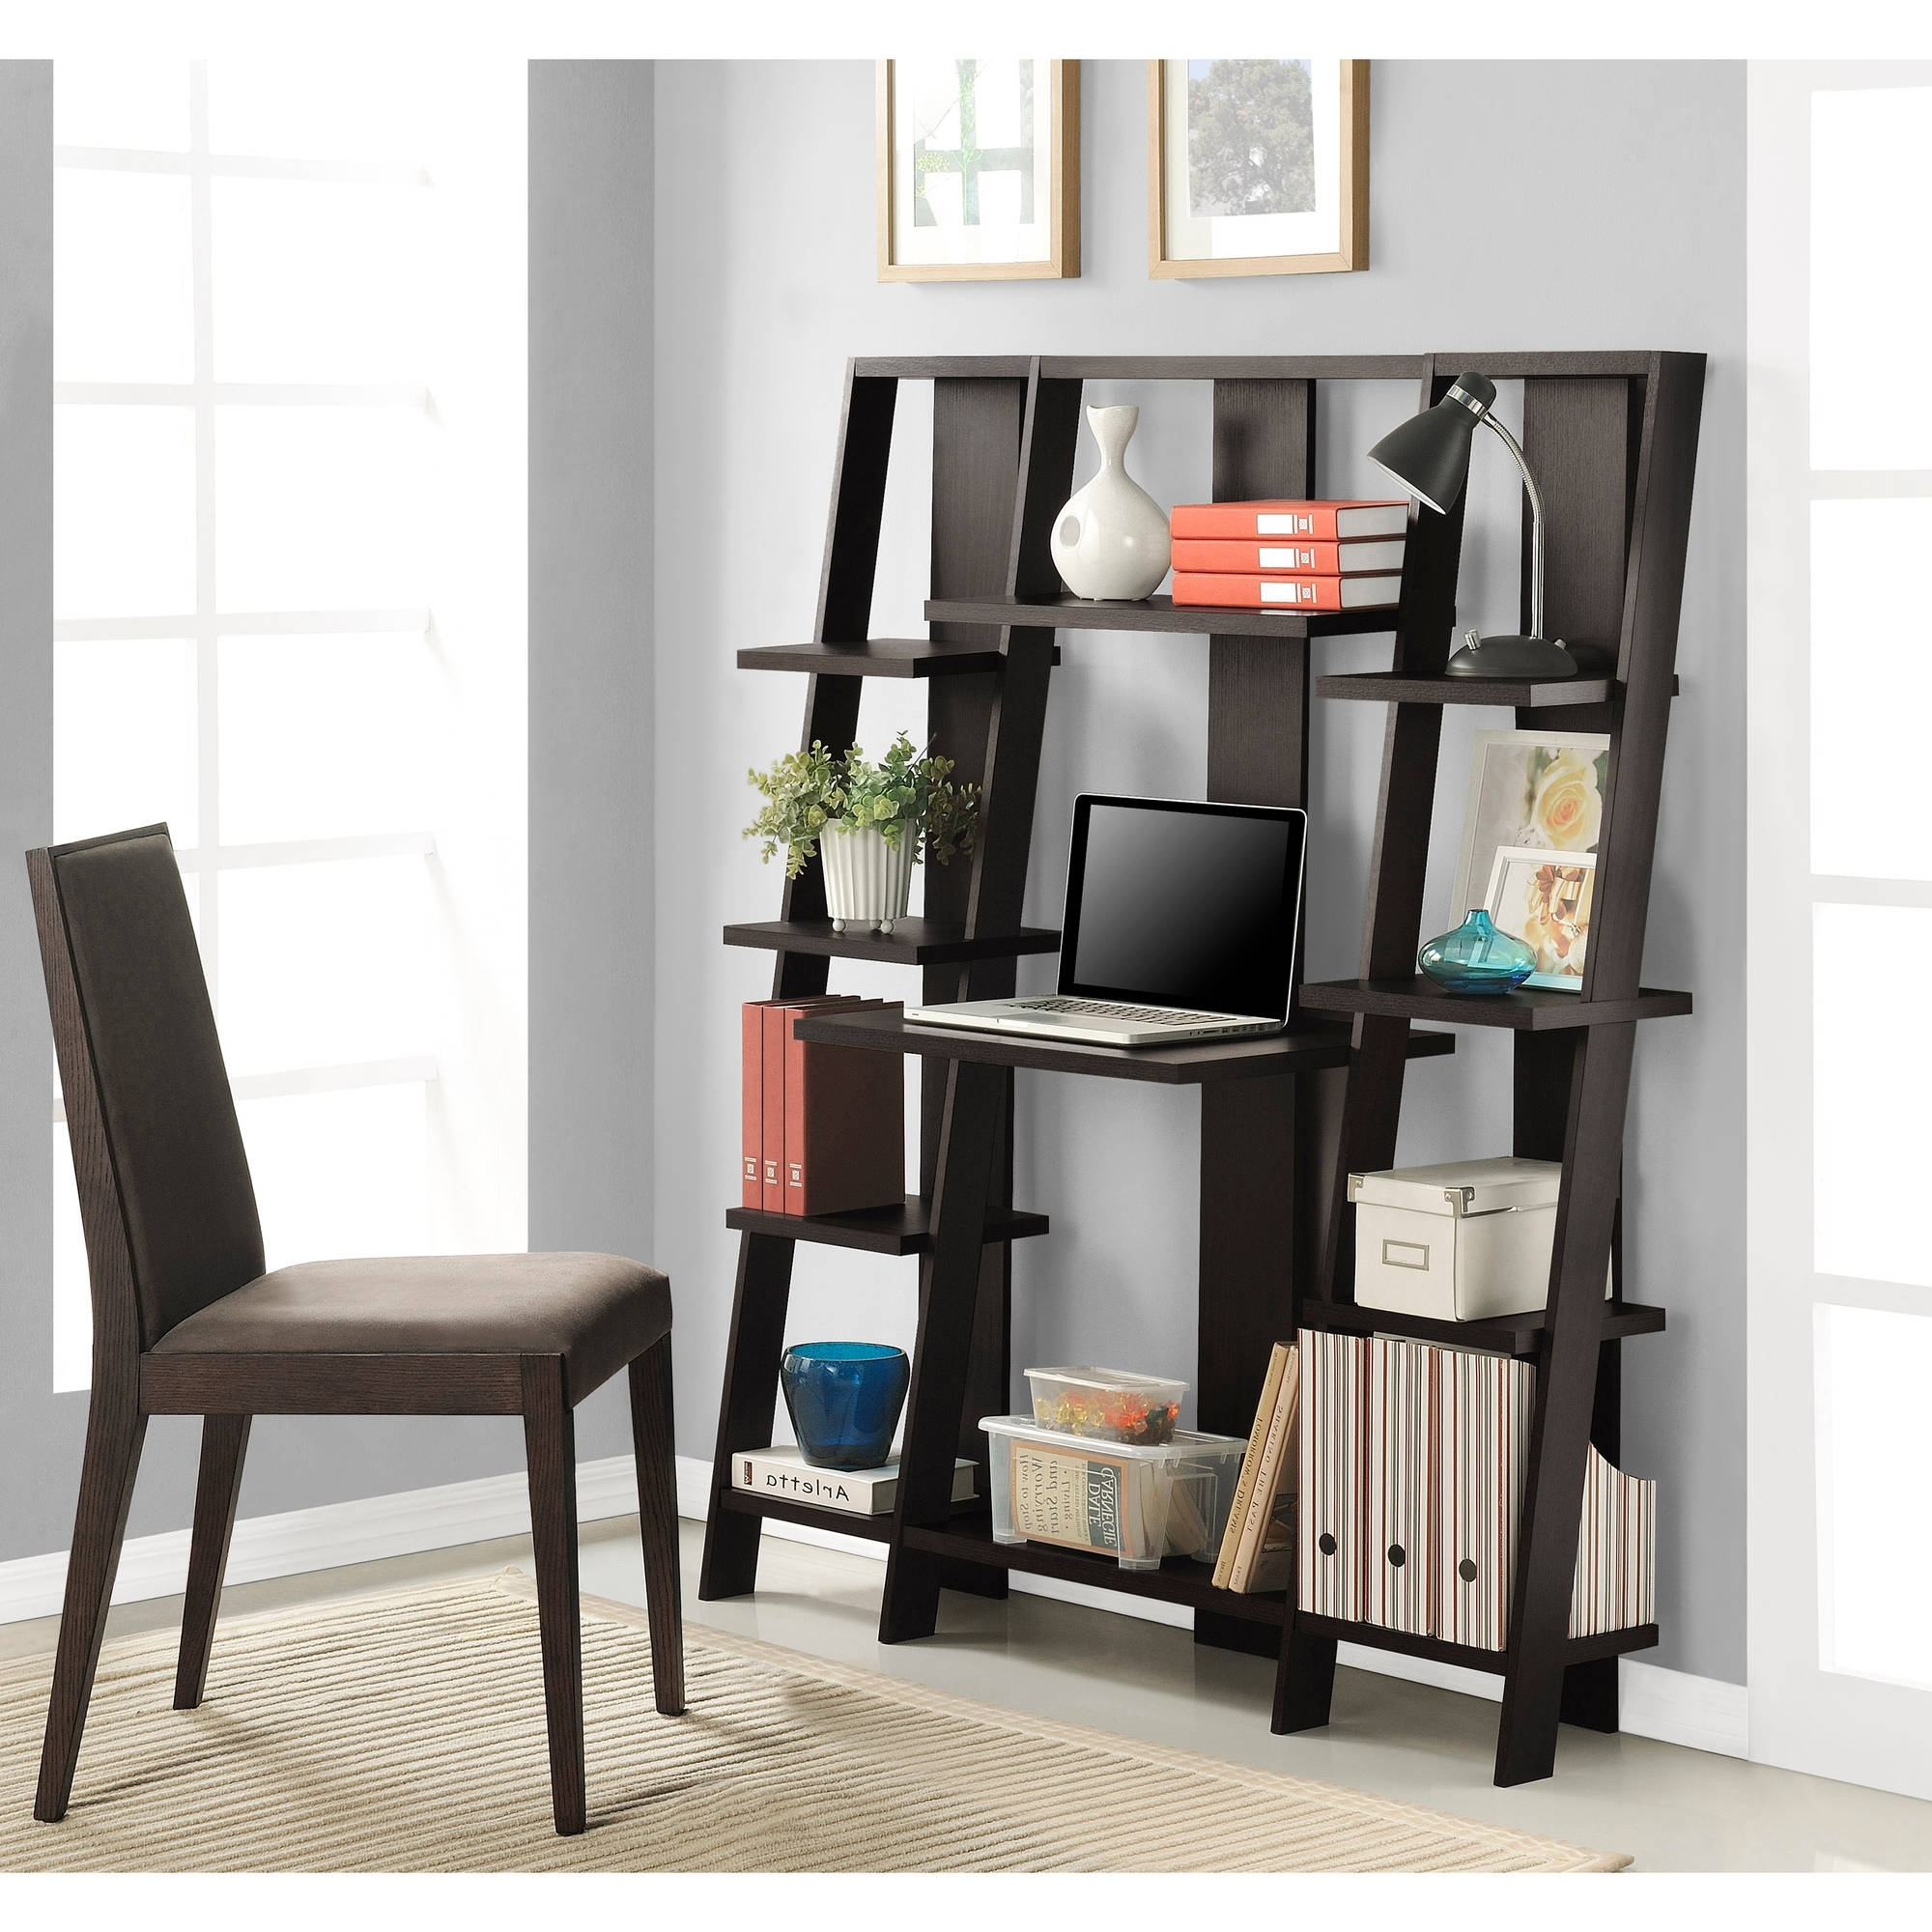 Fashionable Ameriwood Home Gradient Ladder Desk/bookcase, Espresso – Walmart In Leaning Shelf Bookcases (View 1 of 15)